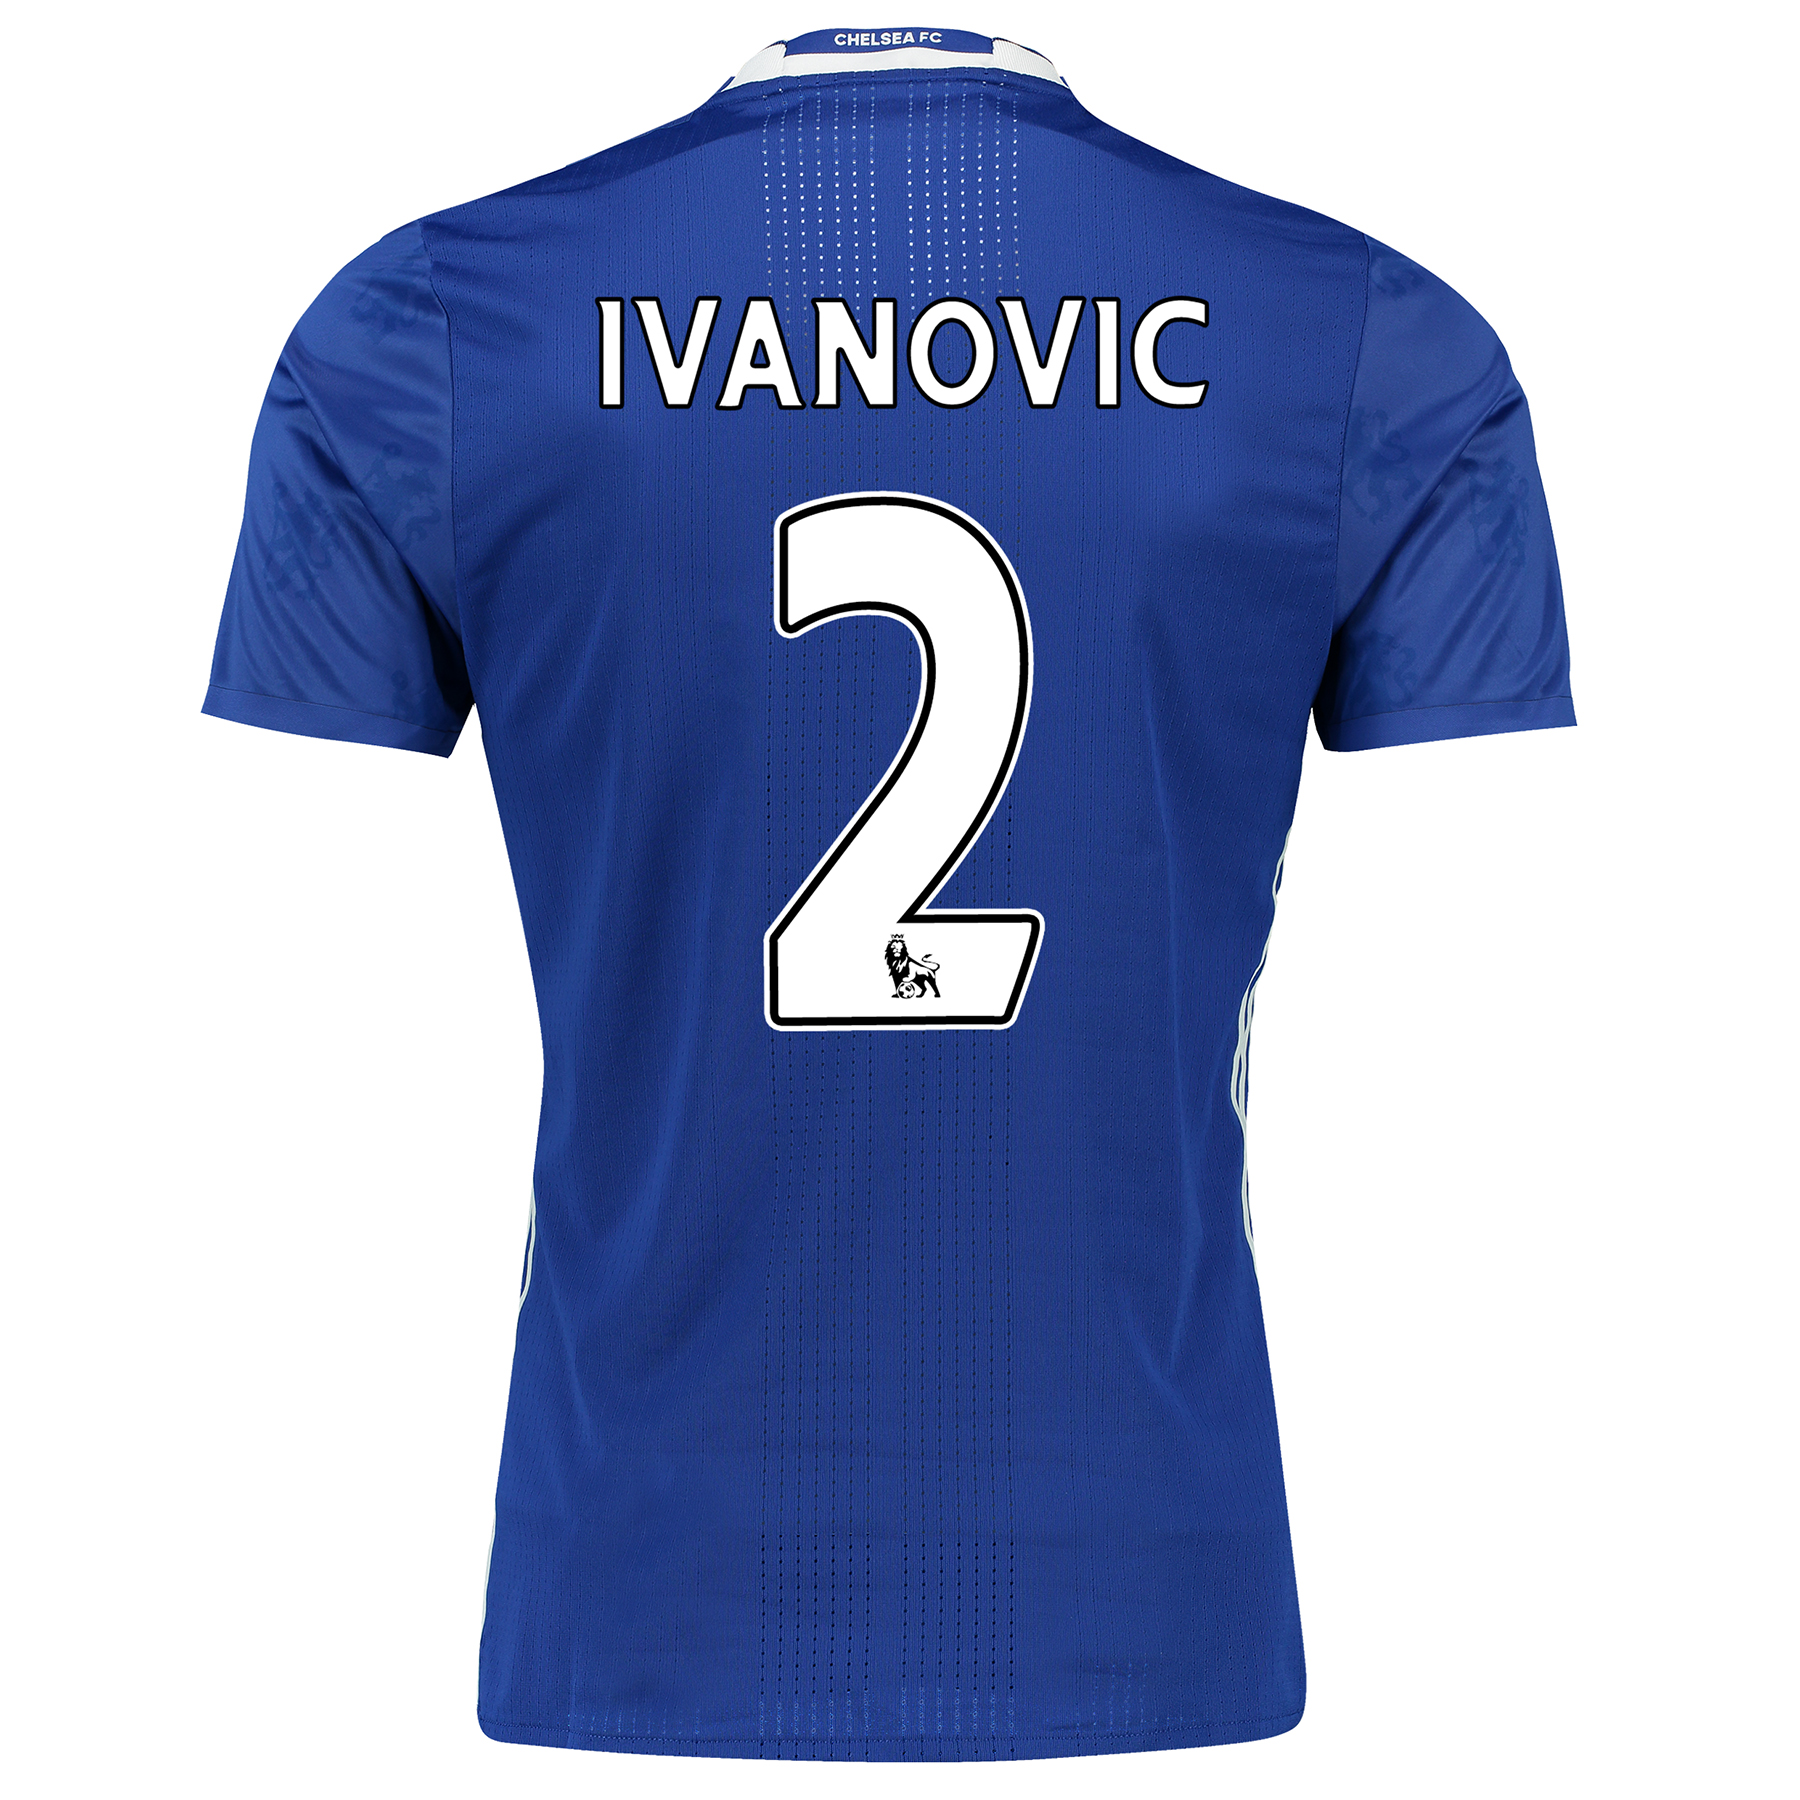 Shop Ivanovic Printed Shirts